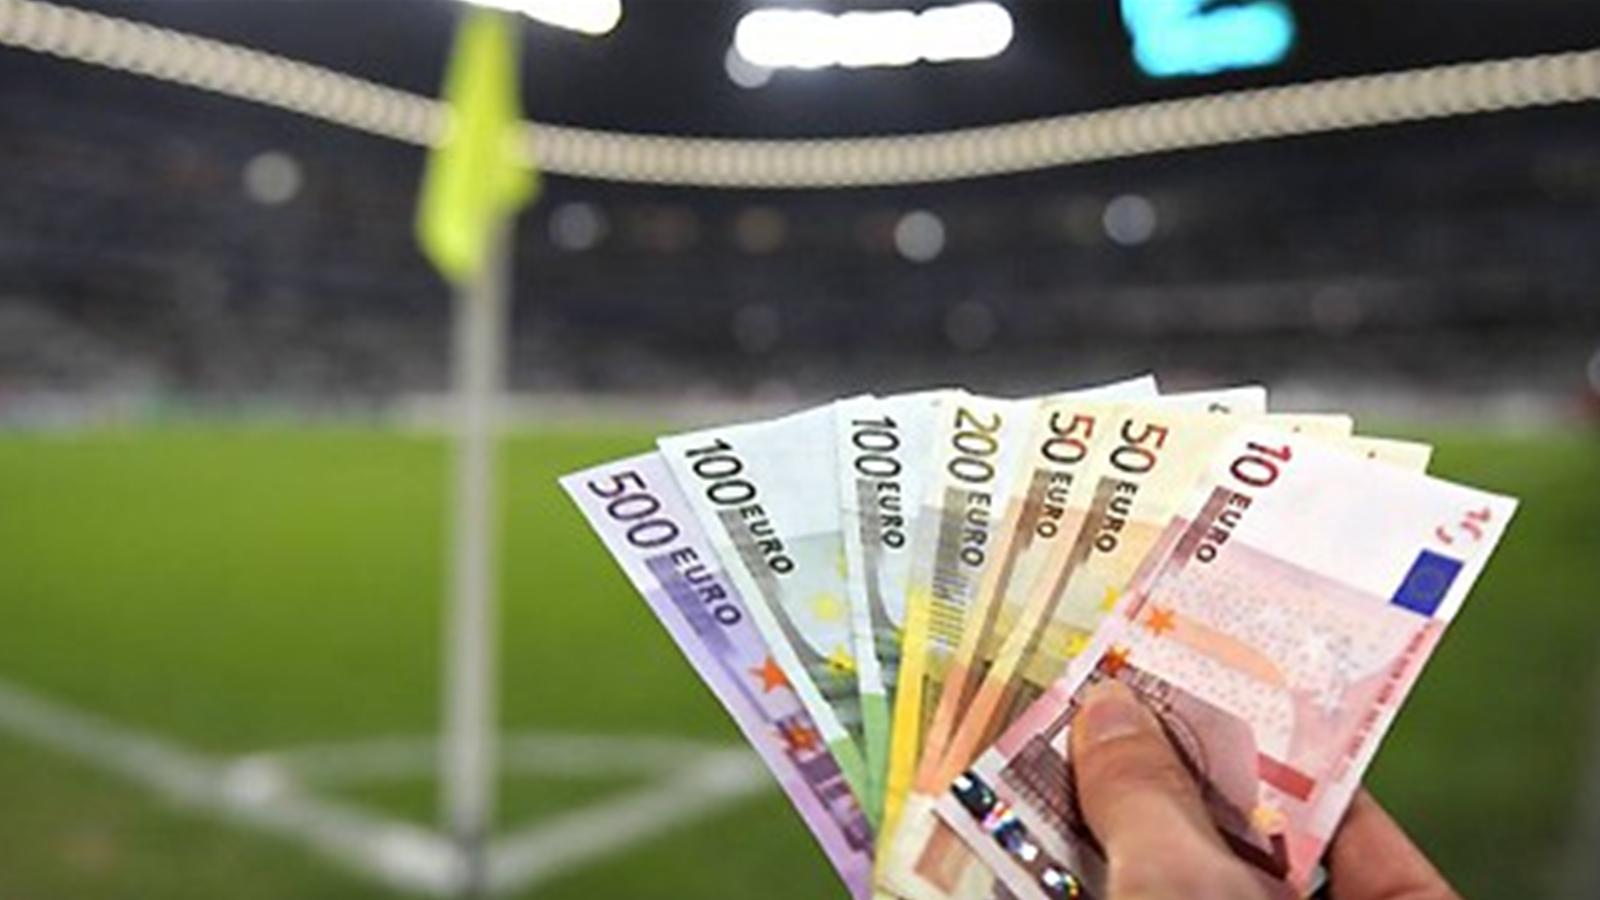 football games odds gaming bet